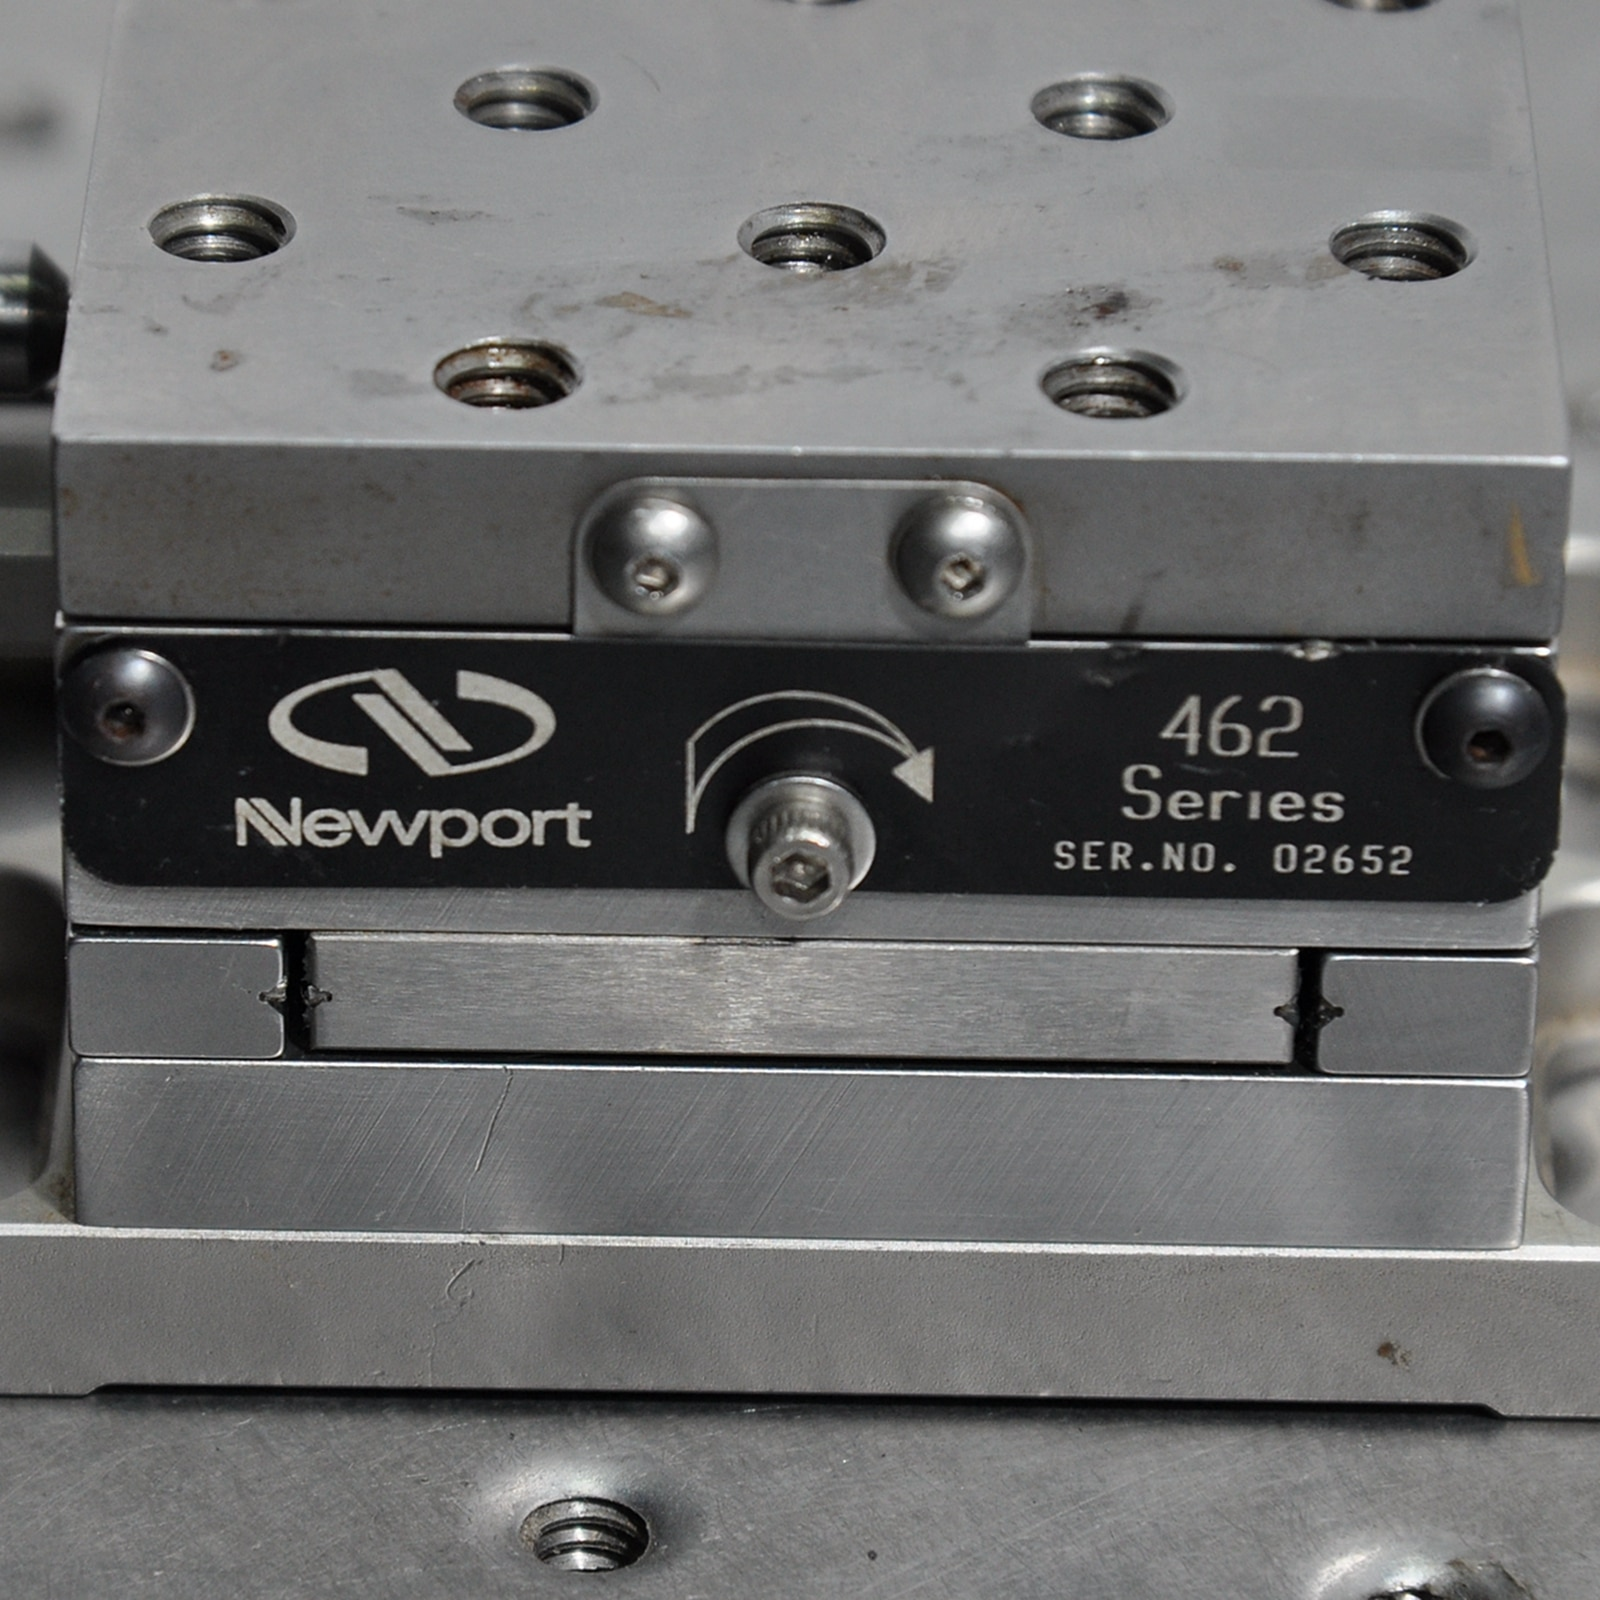 Newport XY linear stage M-462 series 25.4mm travel, cross roller, M4, M6 enlarge